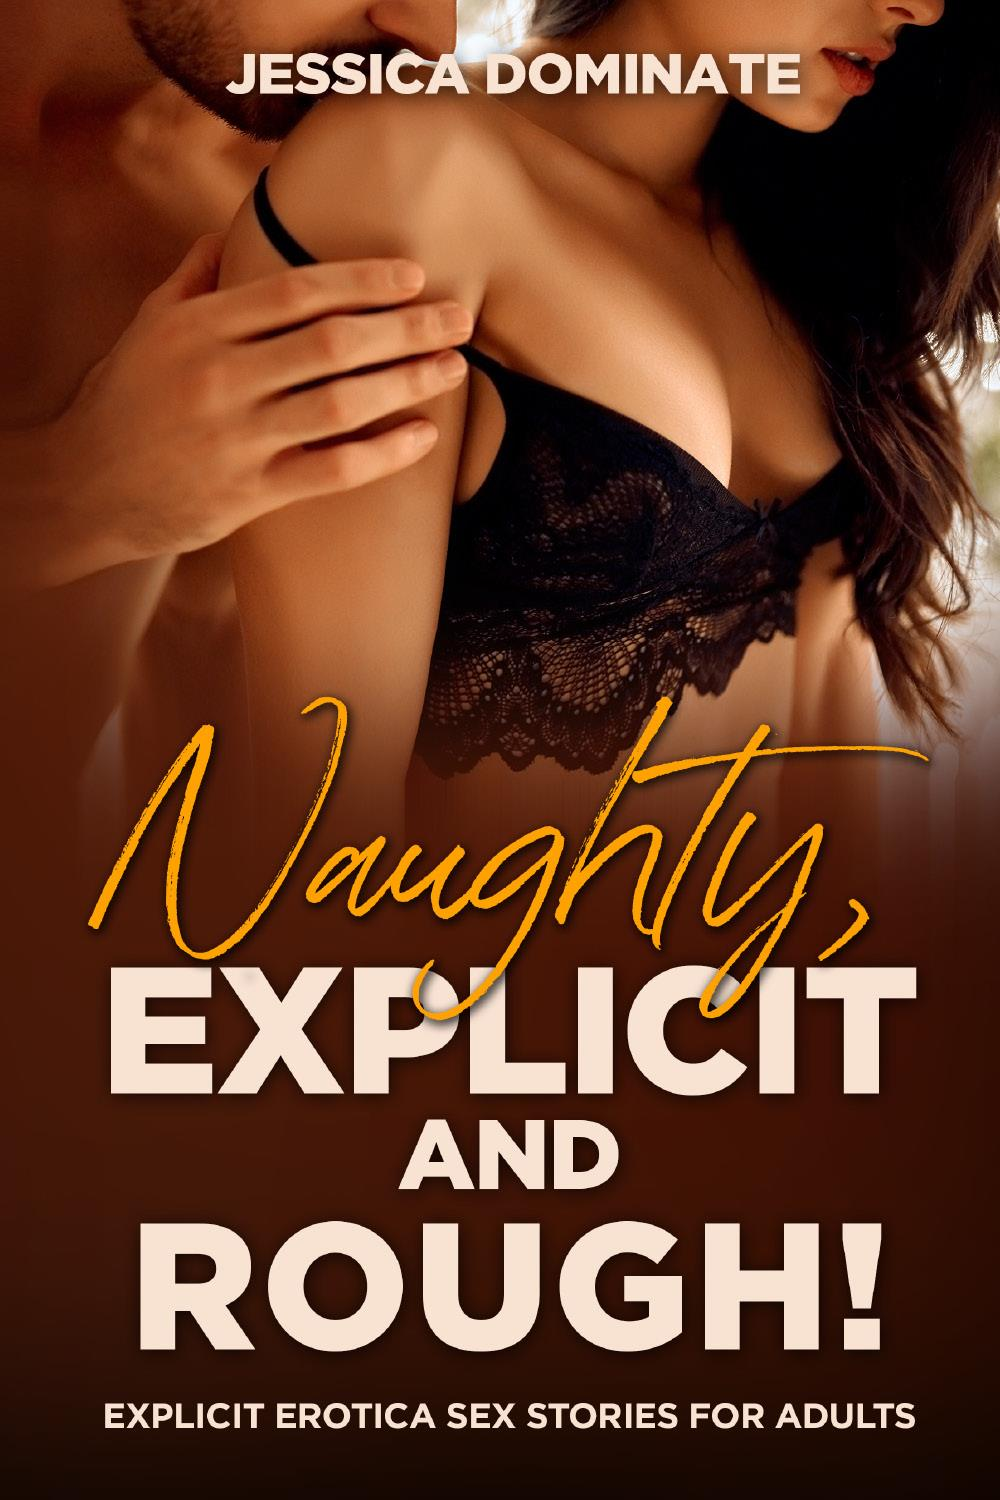 Naughty, Explicit and ROUGH!